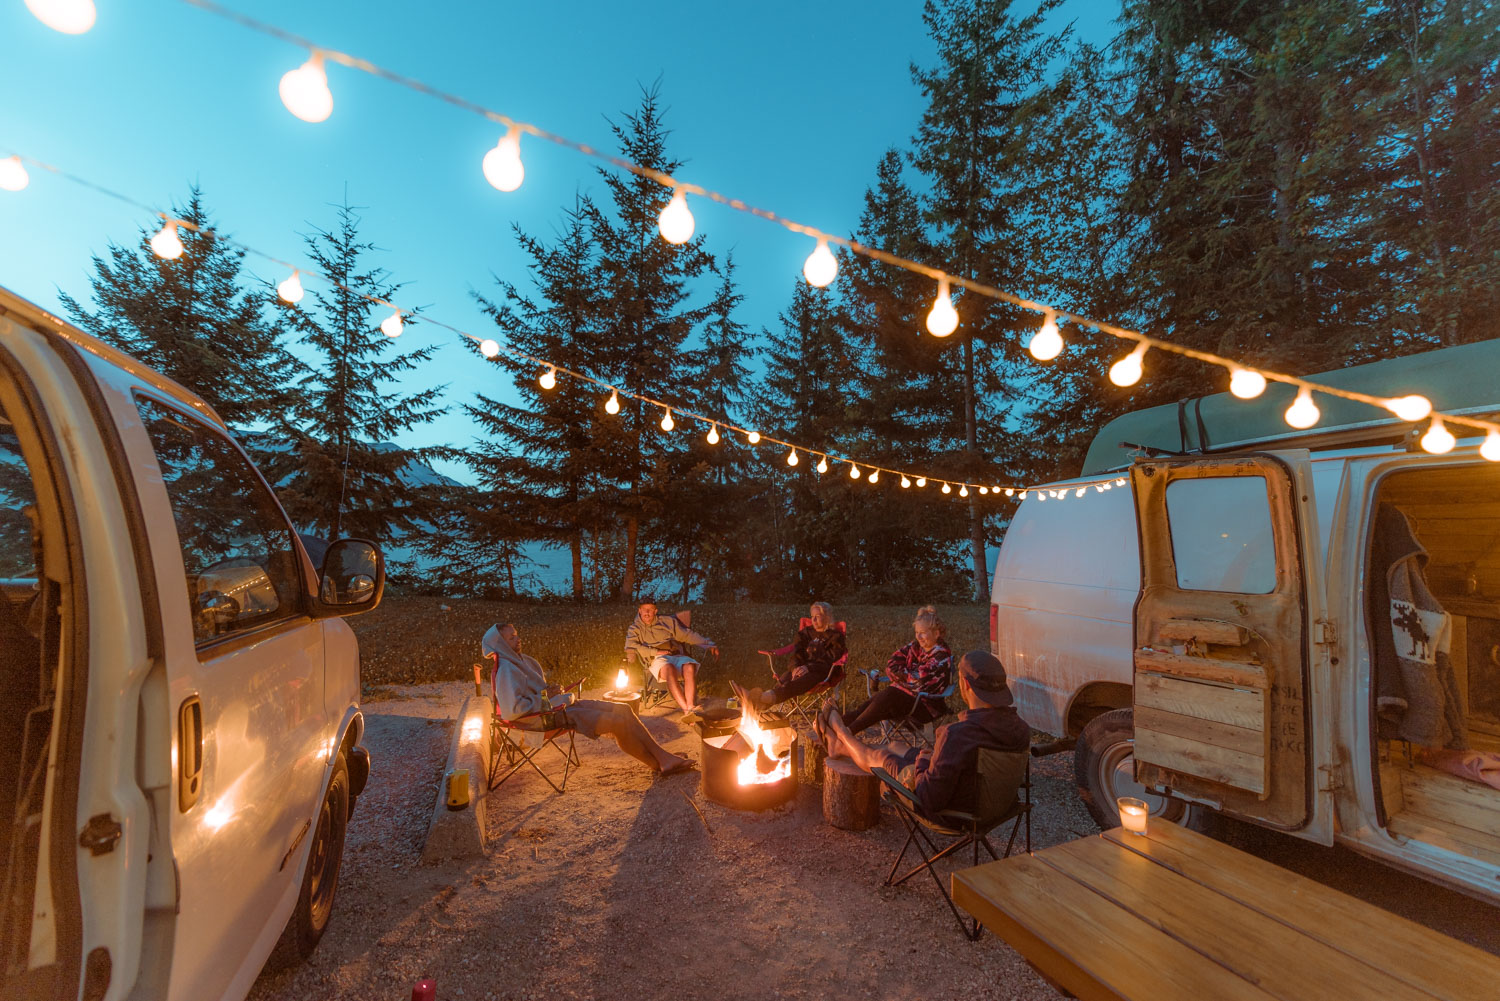 A free and legal campsite will always be more fun and a better option, so do your research to have stress free campsites like this.